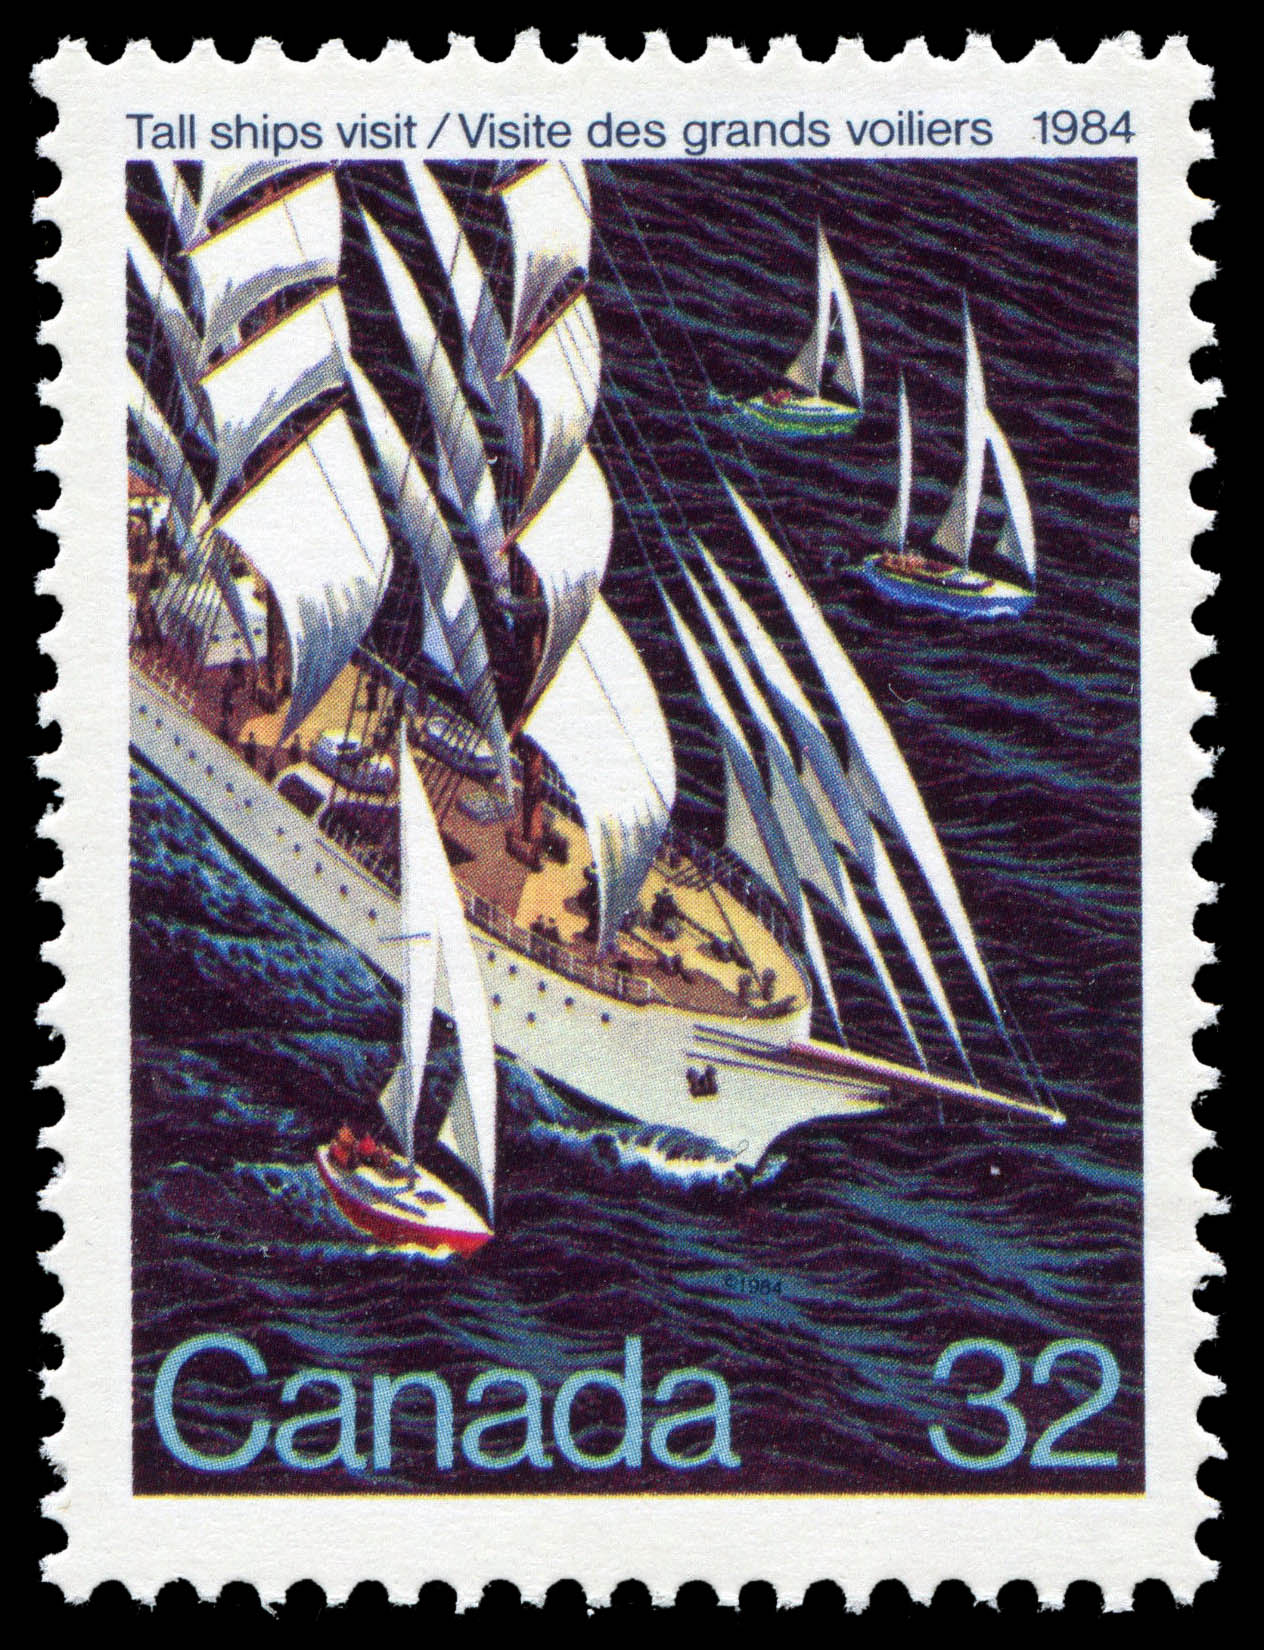 Tall Ships Visit, 1984 Canada Postage Stamp